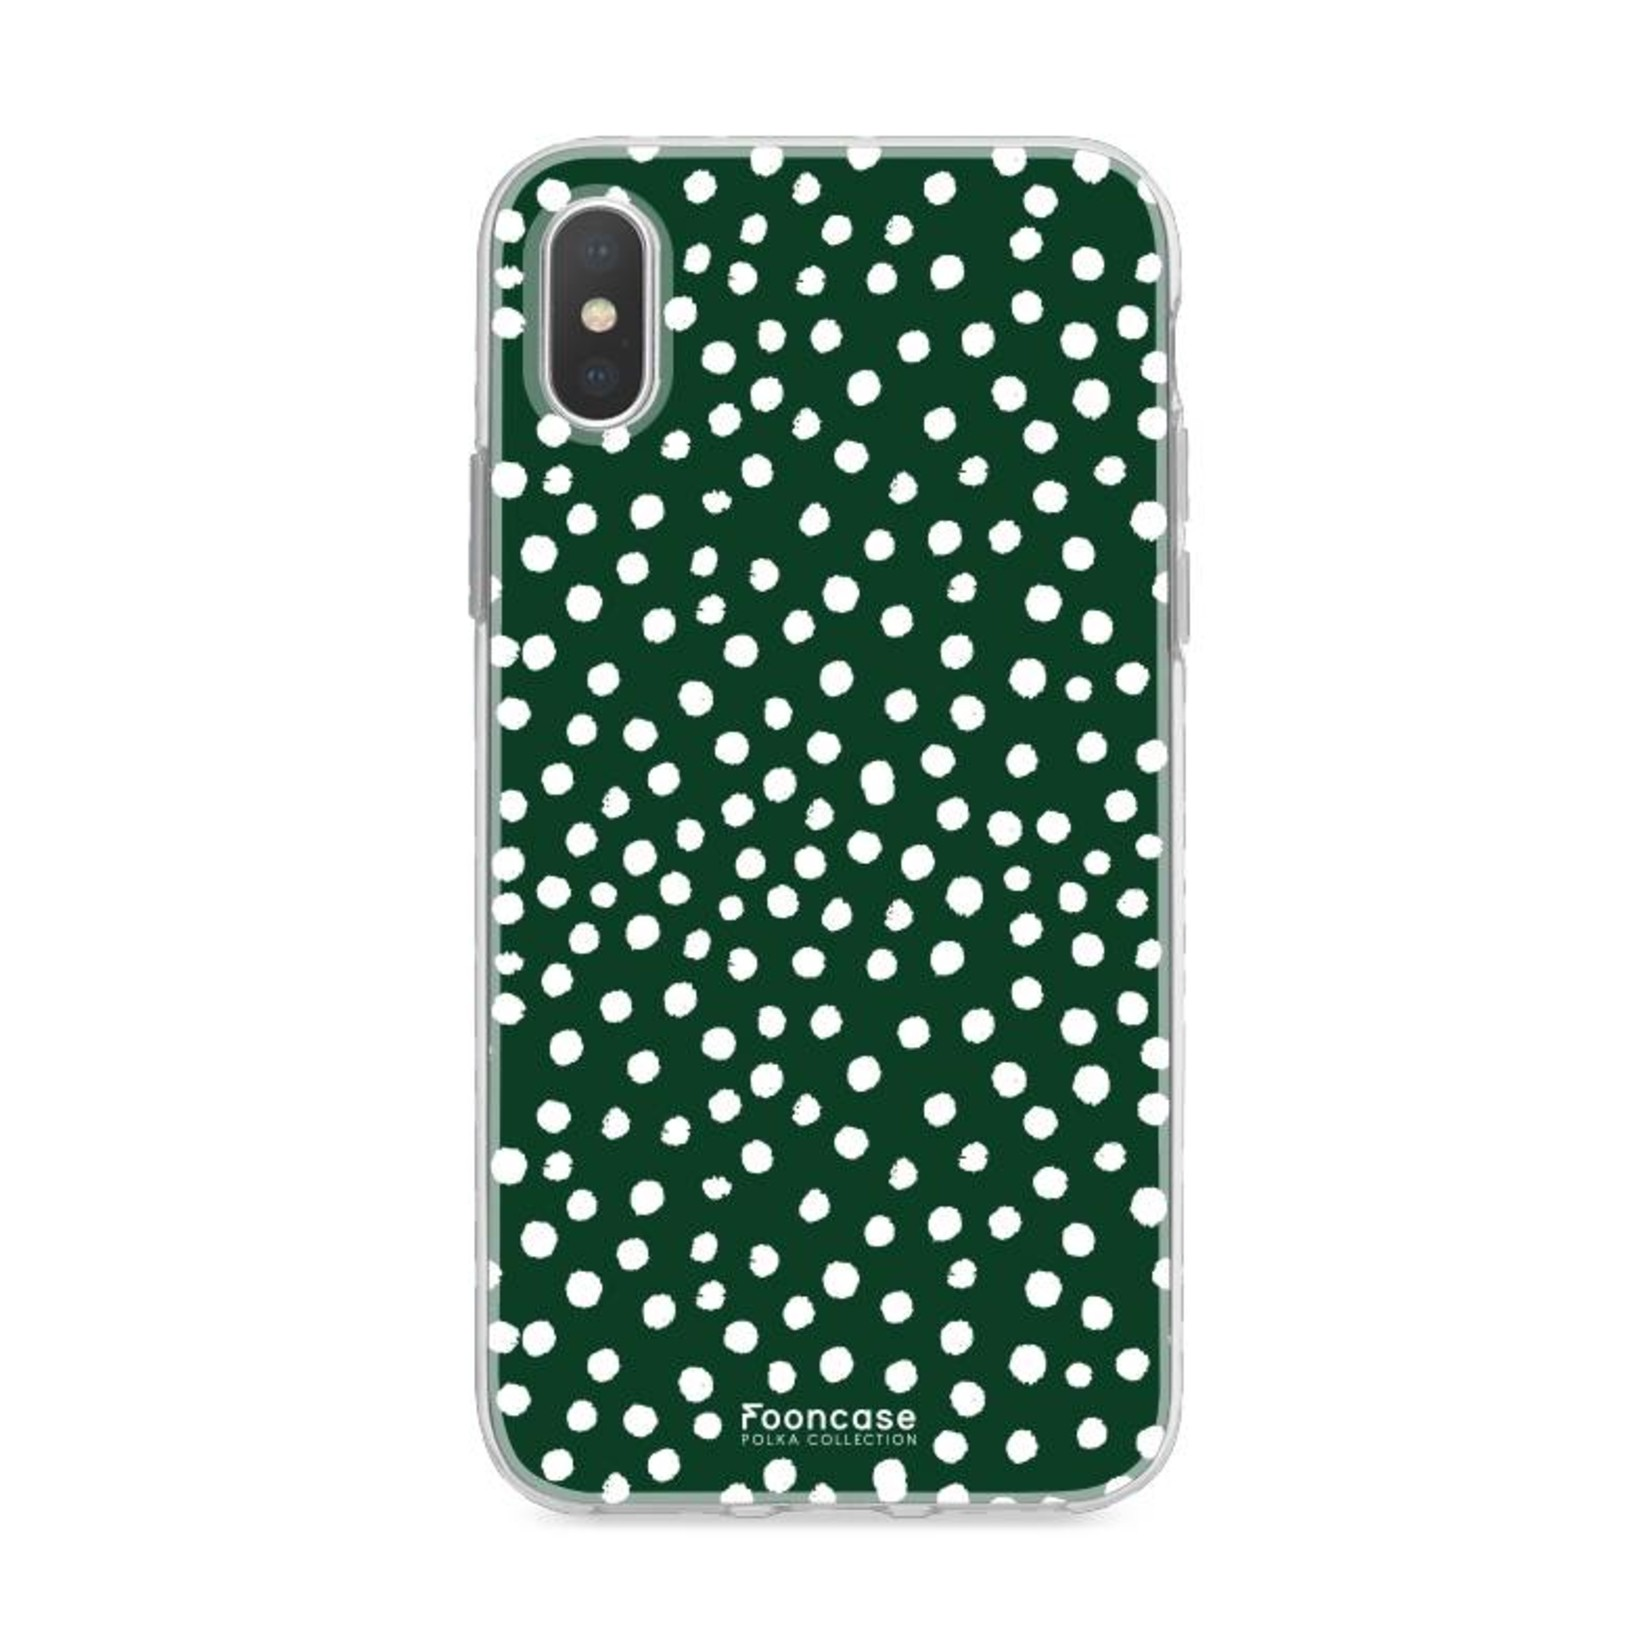 FOONCASE iPhone XS hoesje TPU Soft Case - Back Cover - POLKA COLLECTION / Stipjes / Stippen / Donker Groen